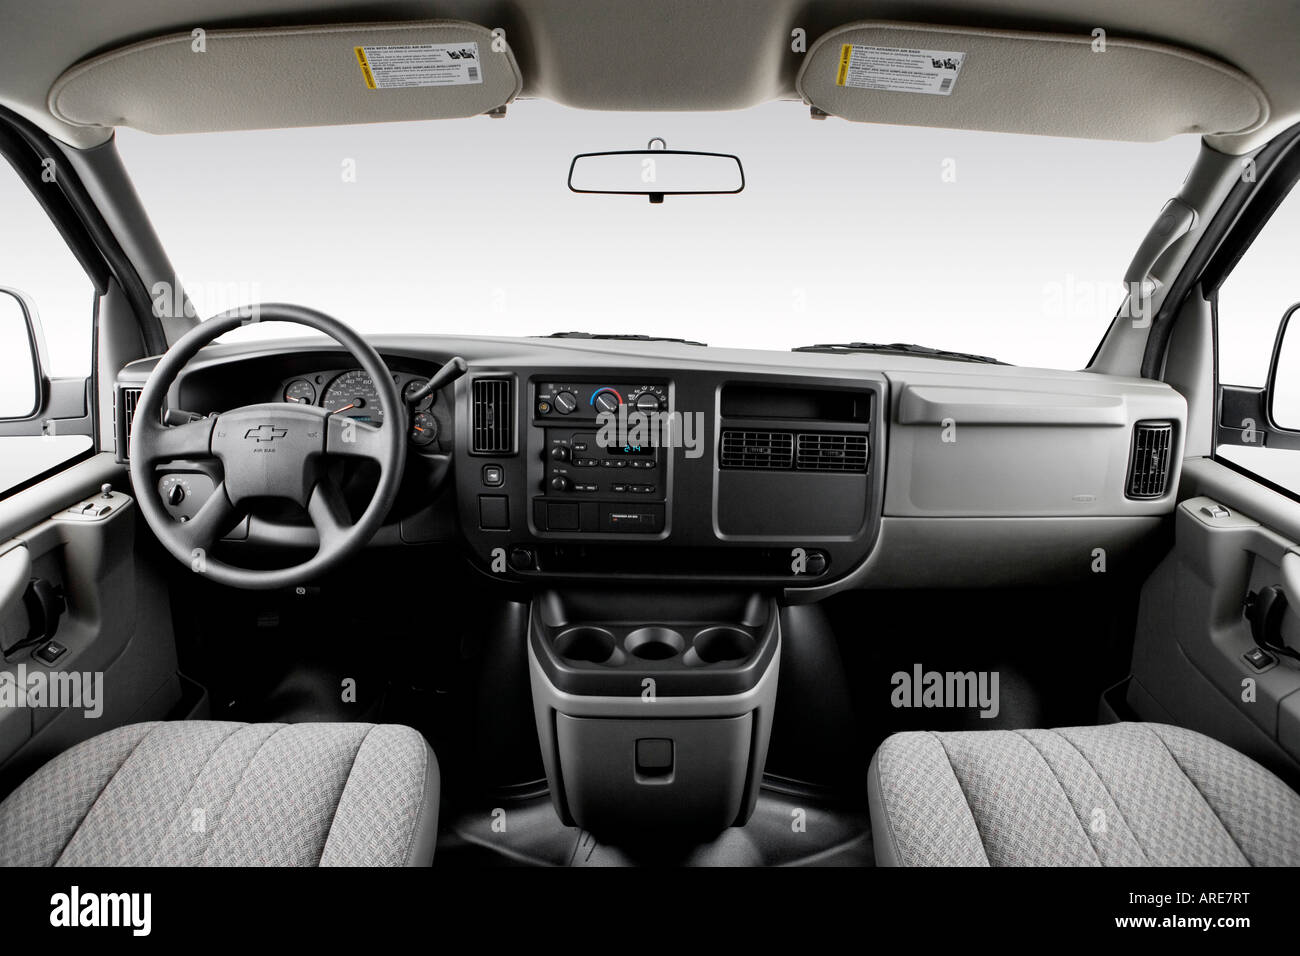 2006 chevrolet express cargo 1500 in white dashboard center console gear shifter view